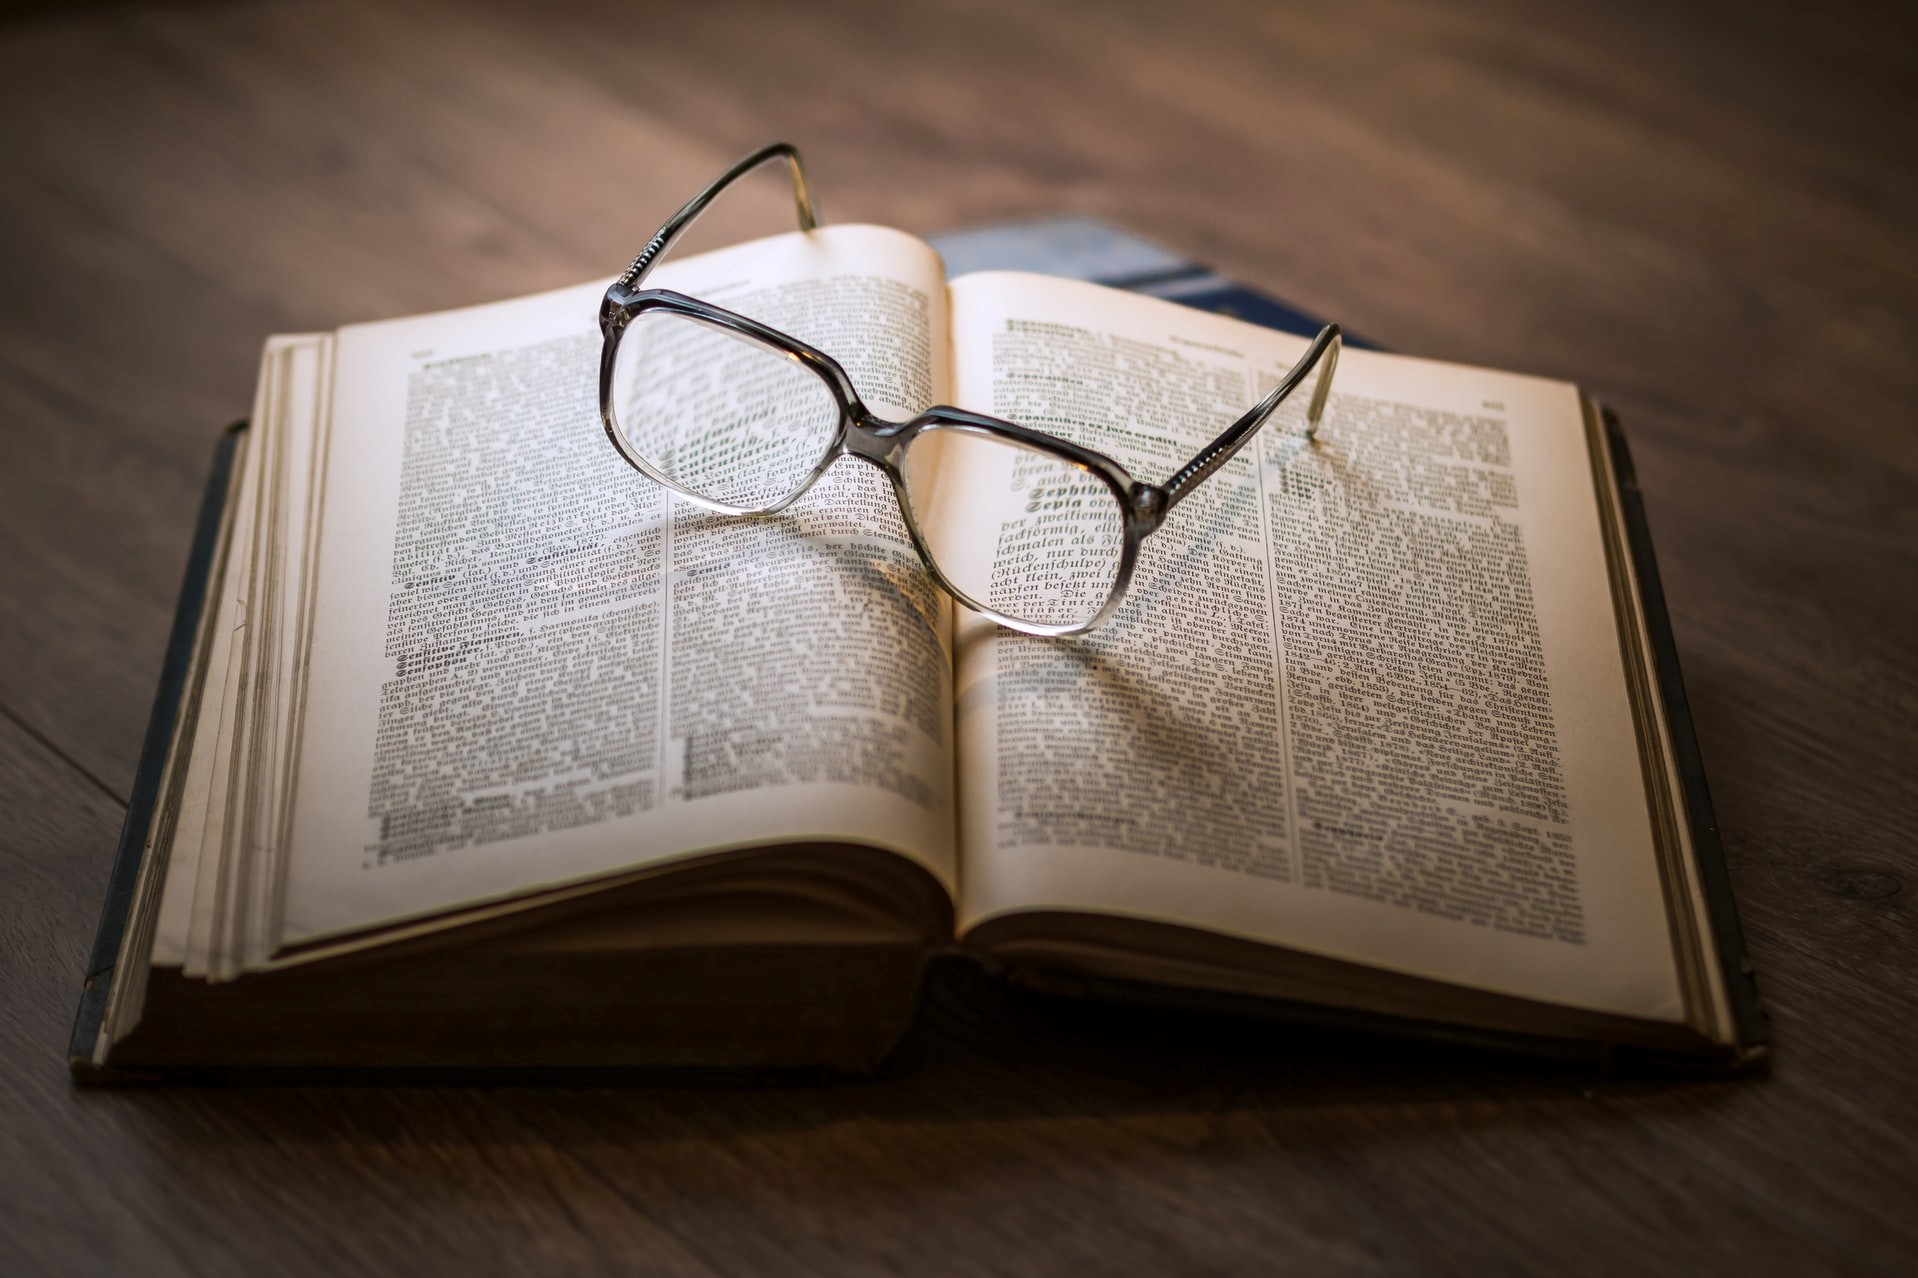 A book with a pair of glasses on them, c. Dariusz Sankows, Unsplash